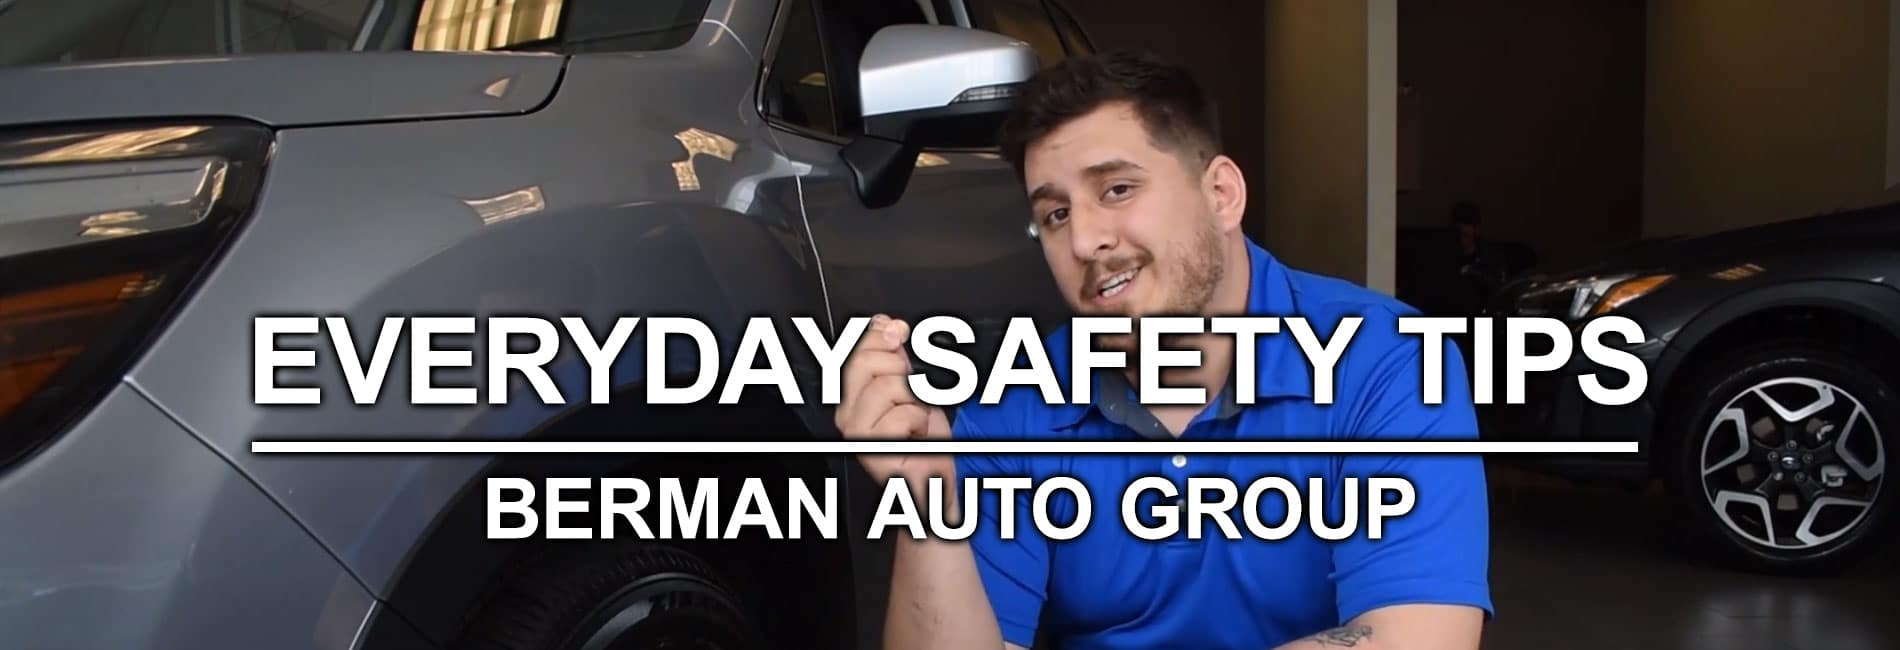 Everyday Safety Tips at Berman Auto Group!